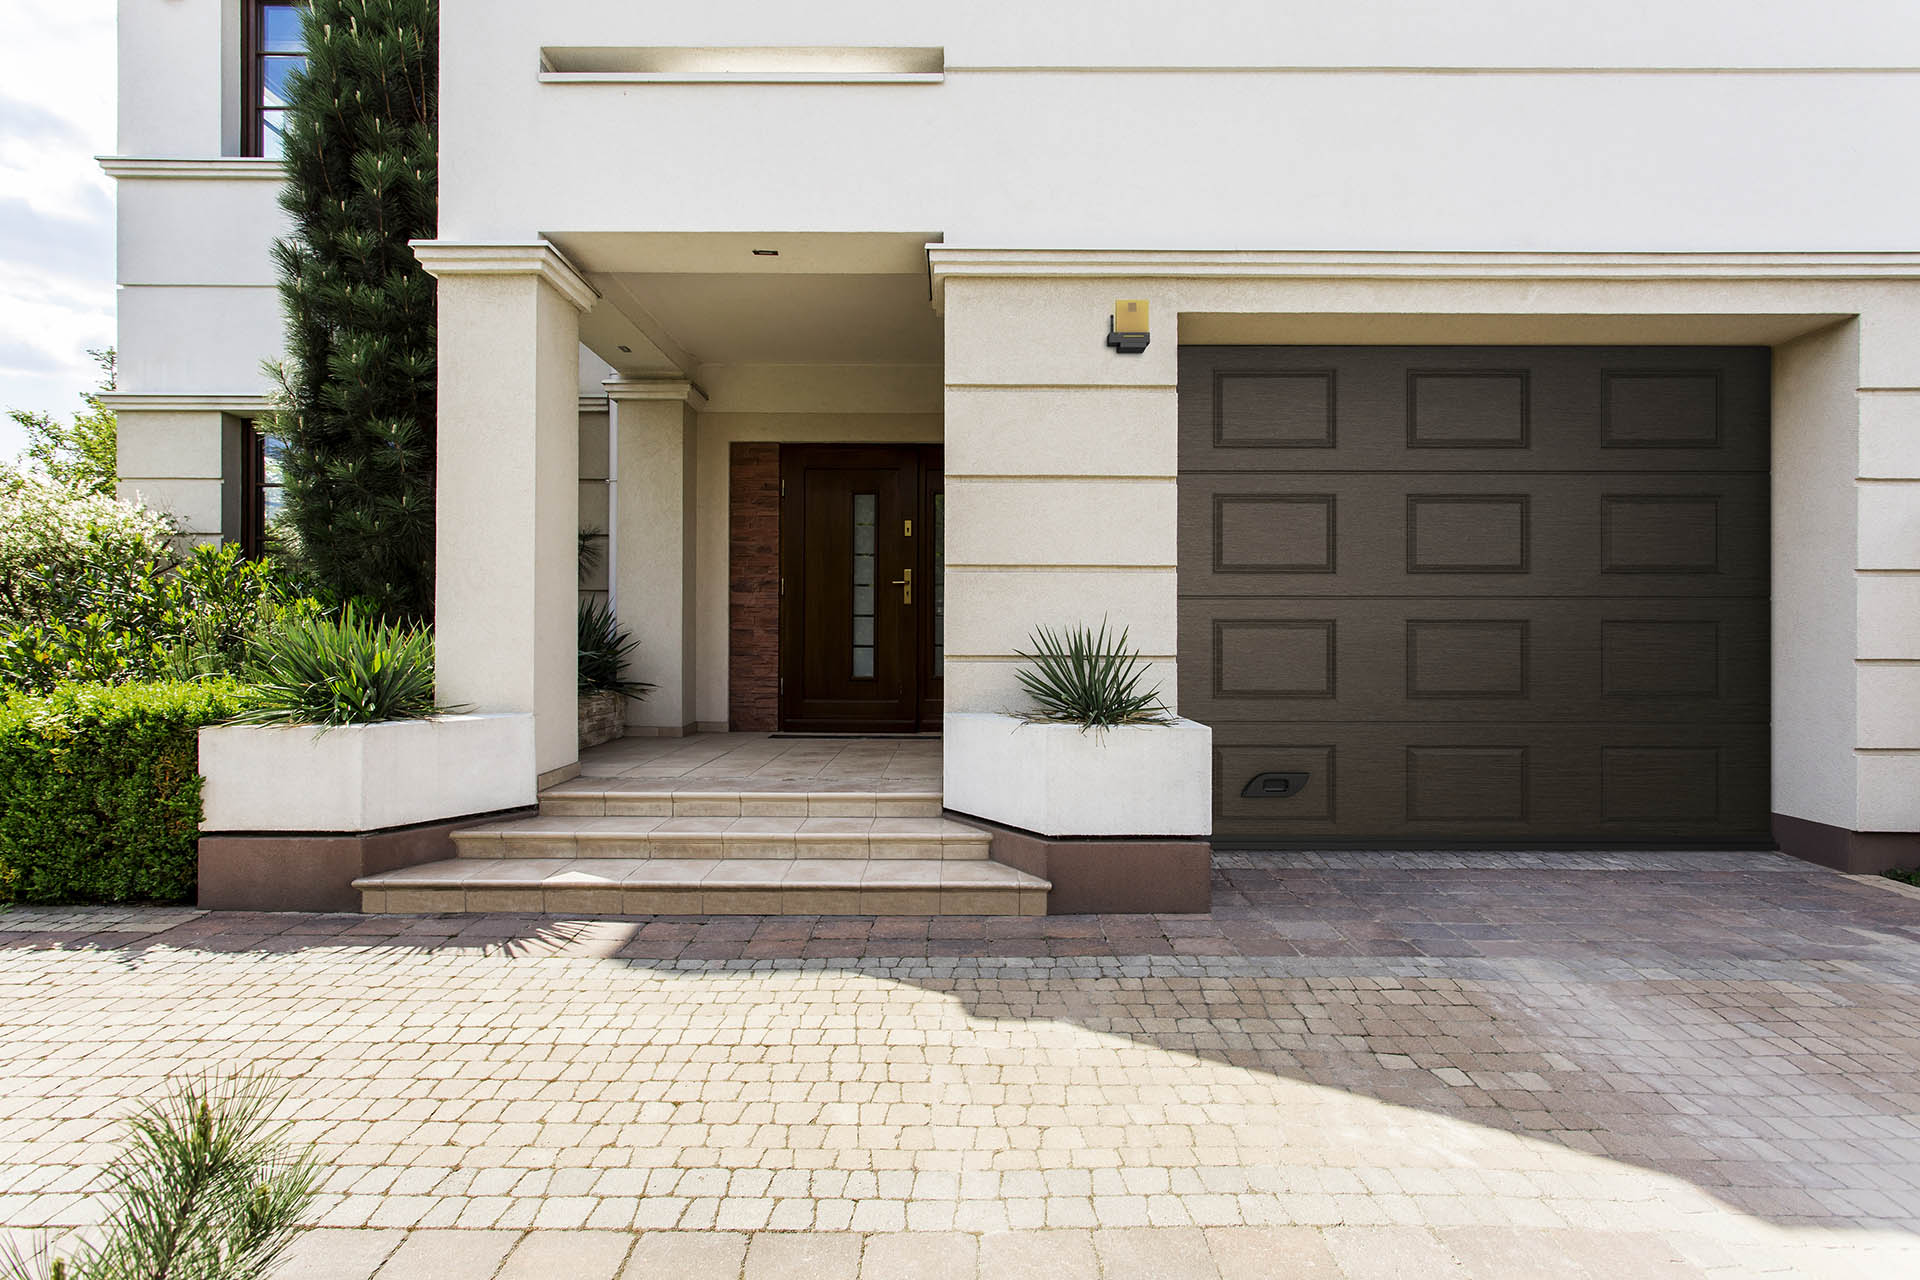 Shot of an entrance to a modern detached house